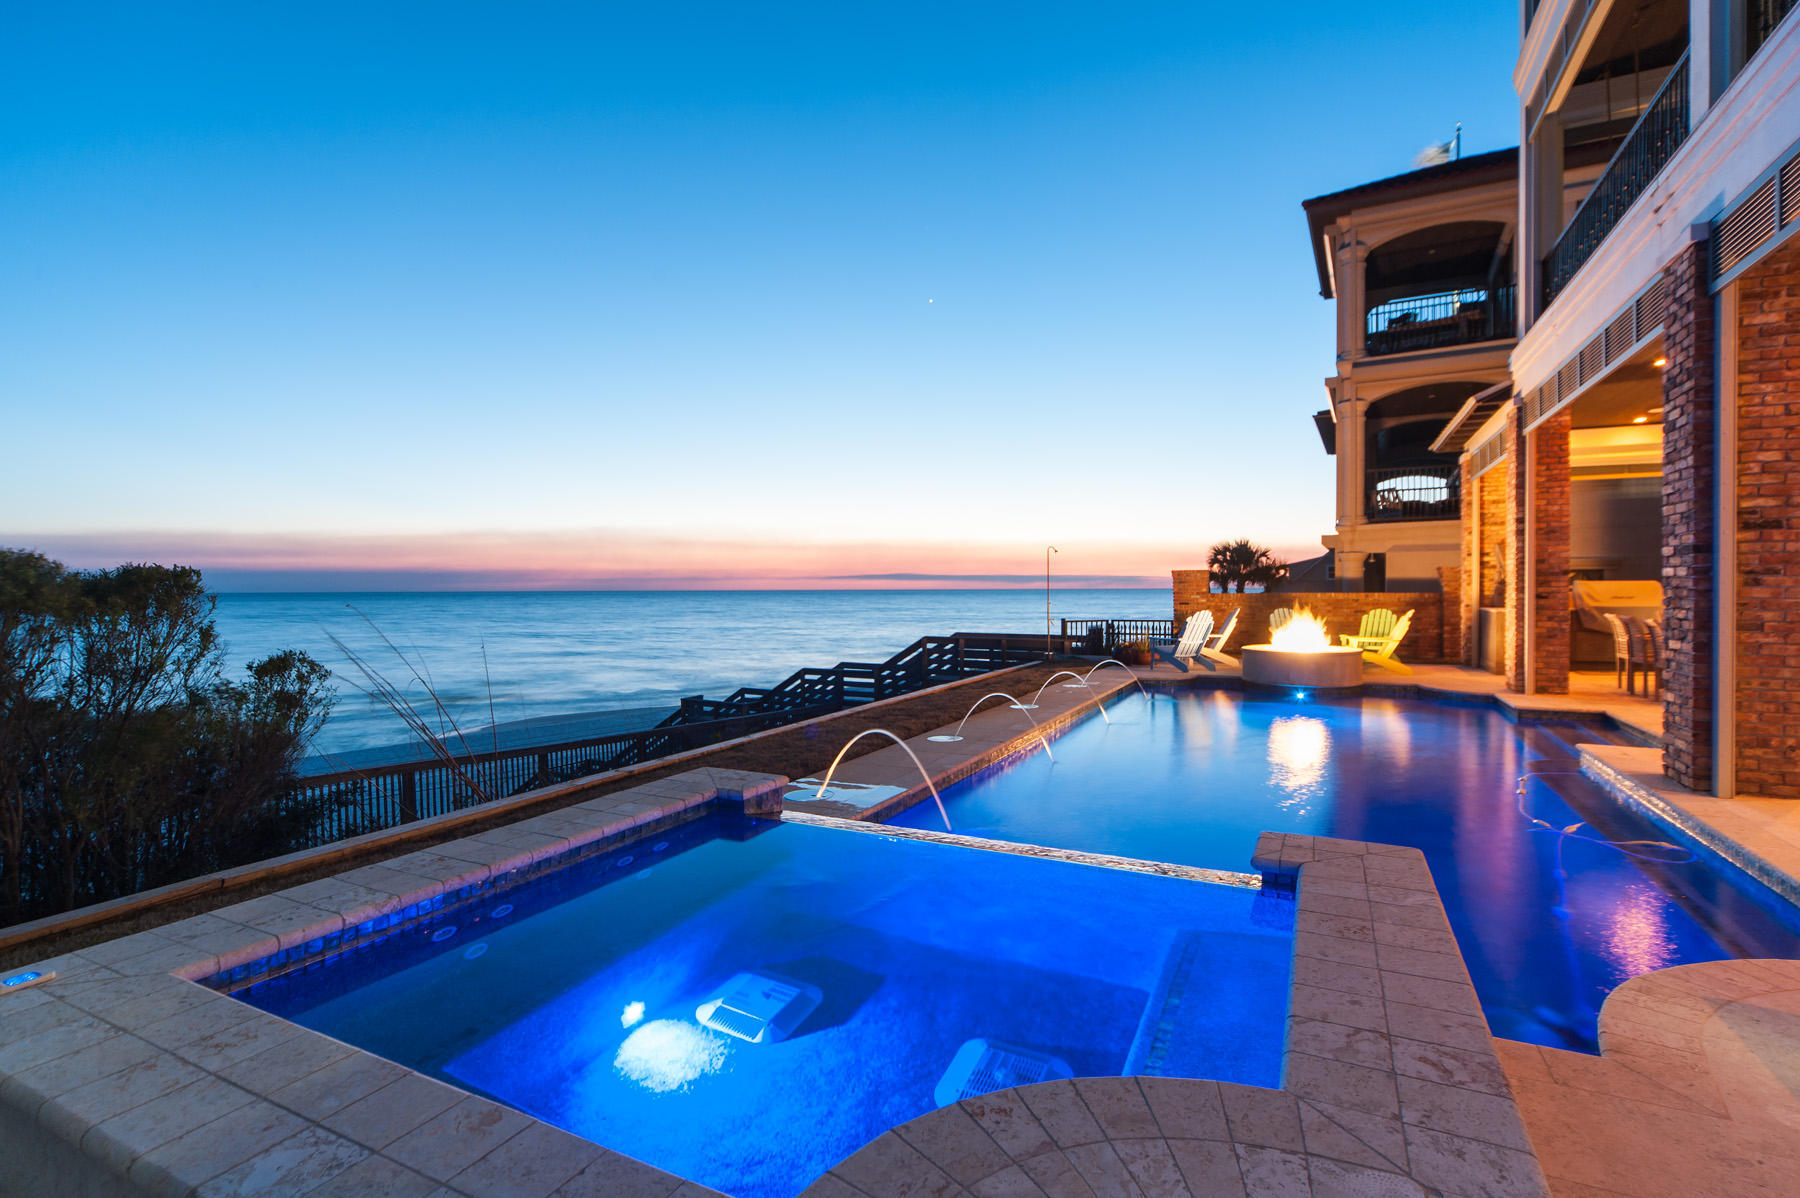 Single Family Home for Sale at GULF VIEWS FROM FOUR FLOORS 768 Blue Mountain Rd Santa Rosa Beach, Florida 32459 United States